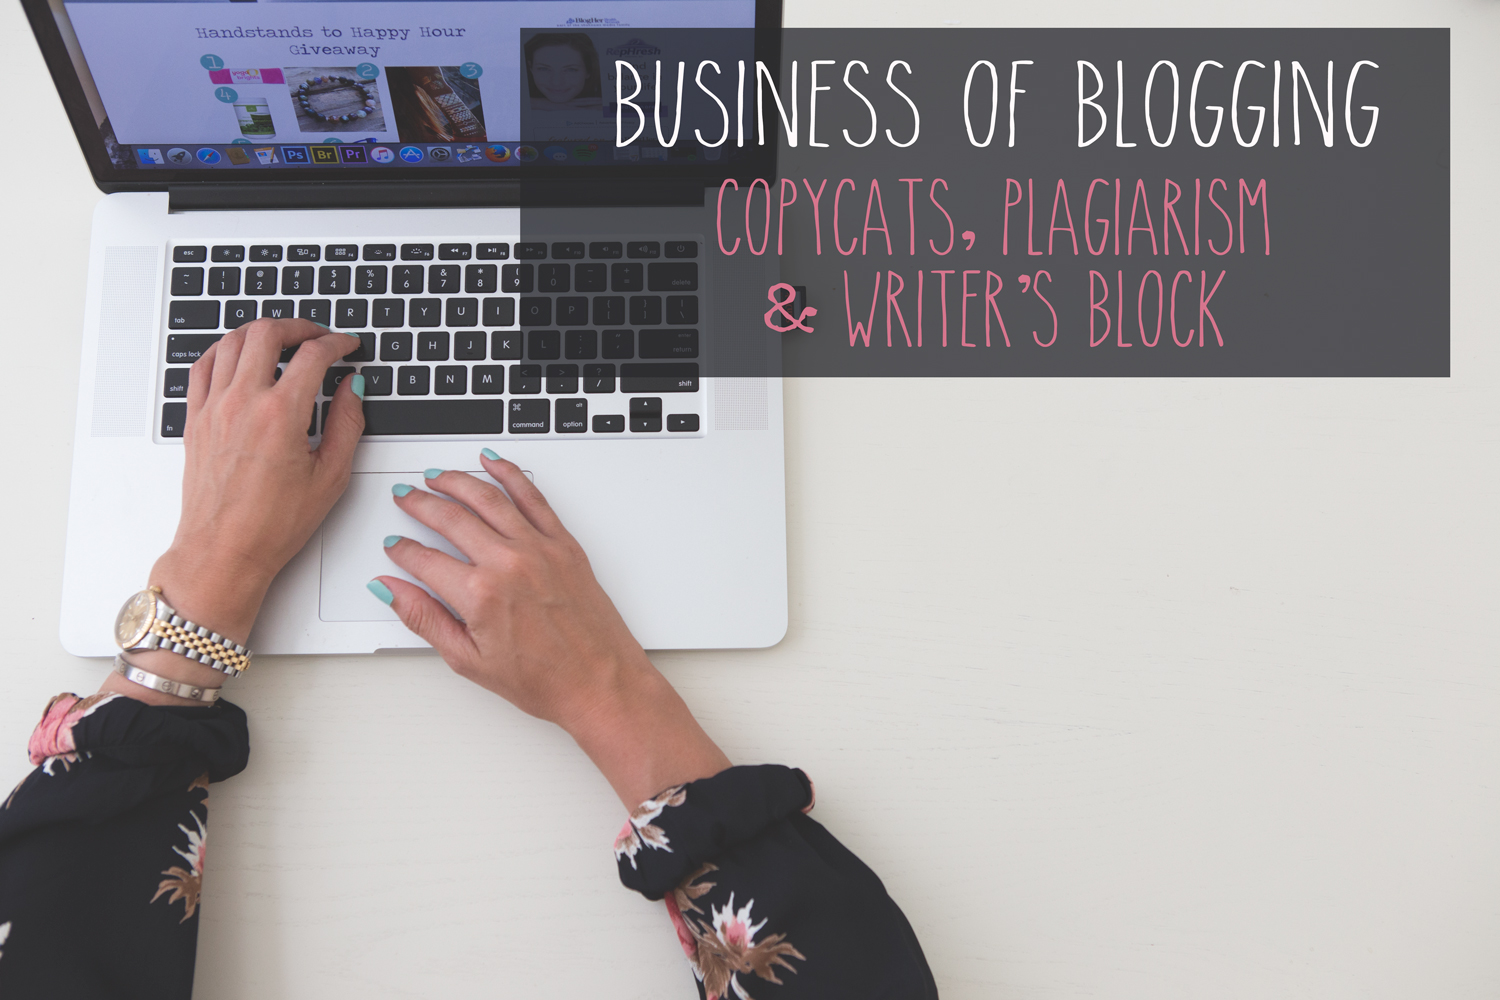 Pin now and learn how to deal with blog copycats, plagiarism and writer's block  Wearing:  Blue Life romper ,  mint candy apple nail polish